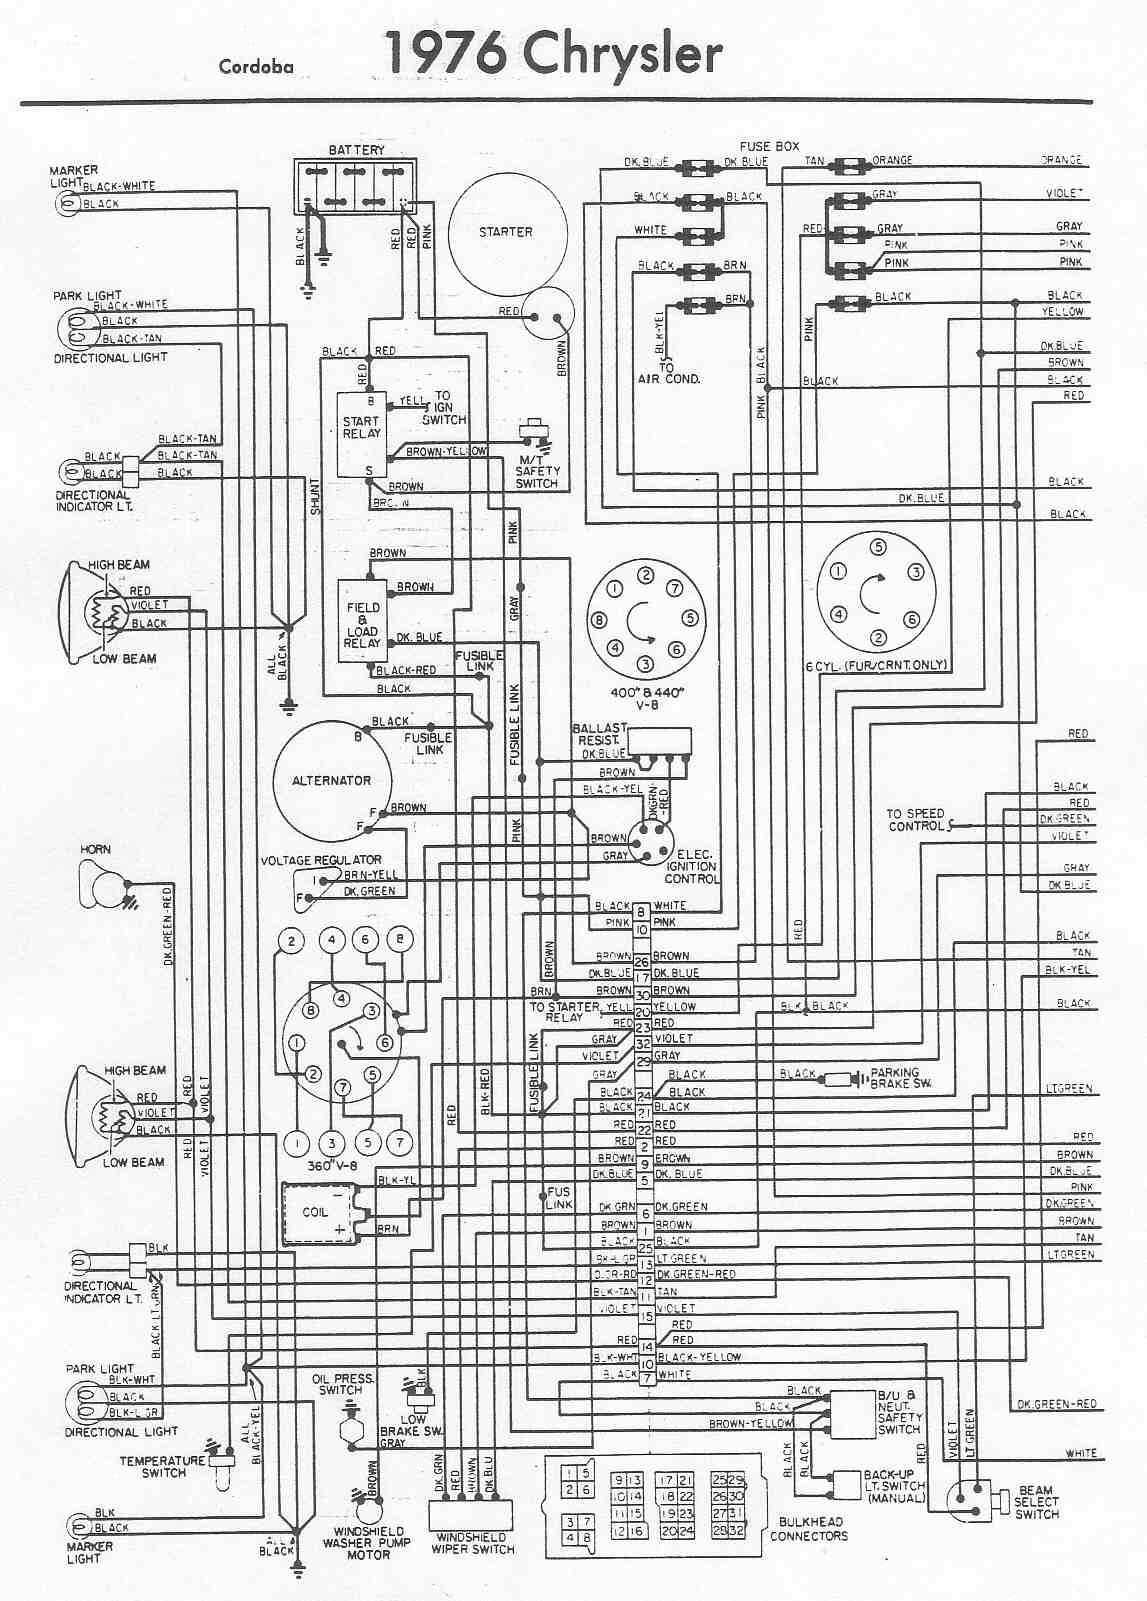 1954 Chrysler Wiring Diagram Great Installation Of Symbols New Yorker Library Rh 92 Skriptoase De Automotive Dodge